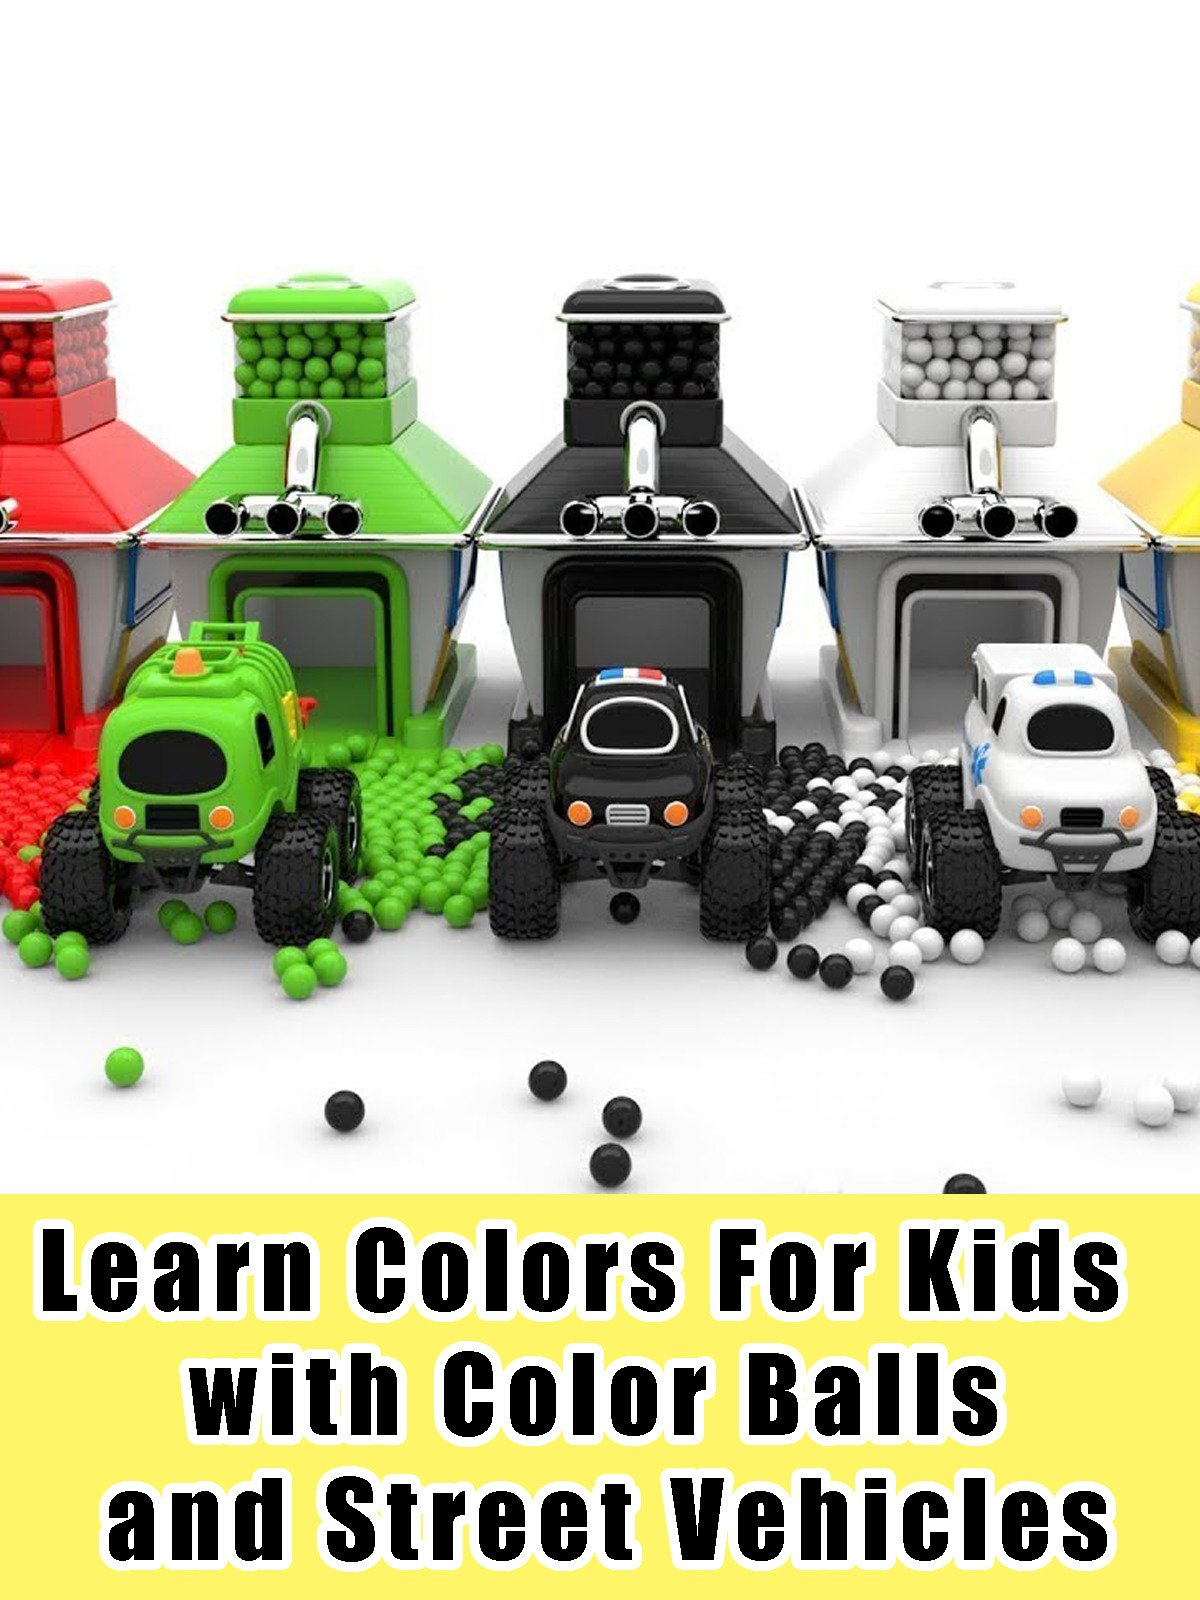 Learn Colors For Kids with Color Balls and Street Vehicles